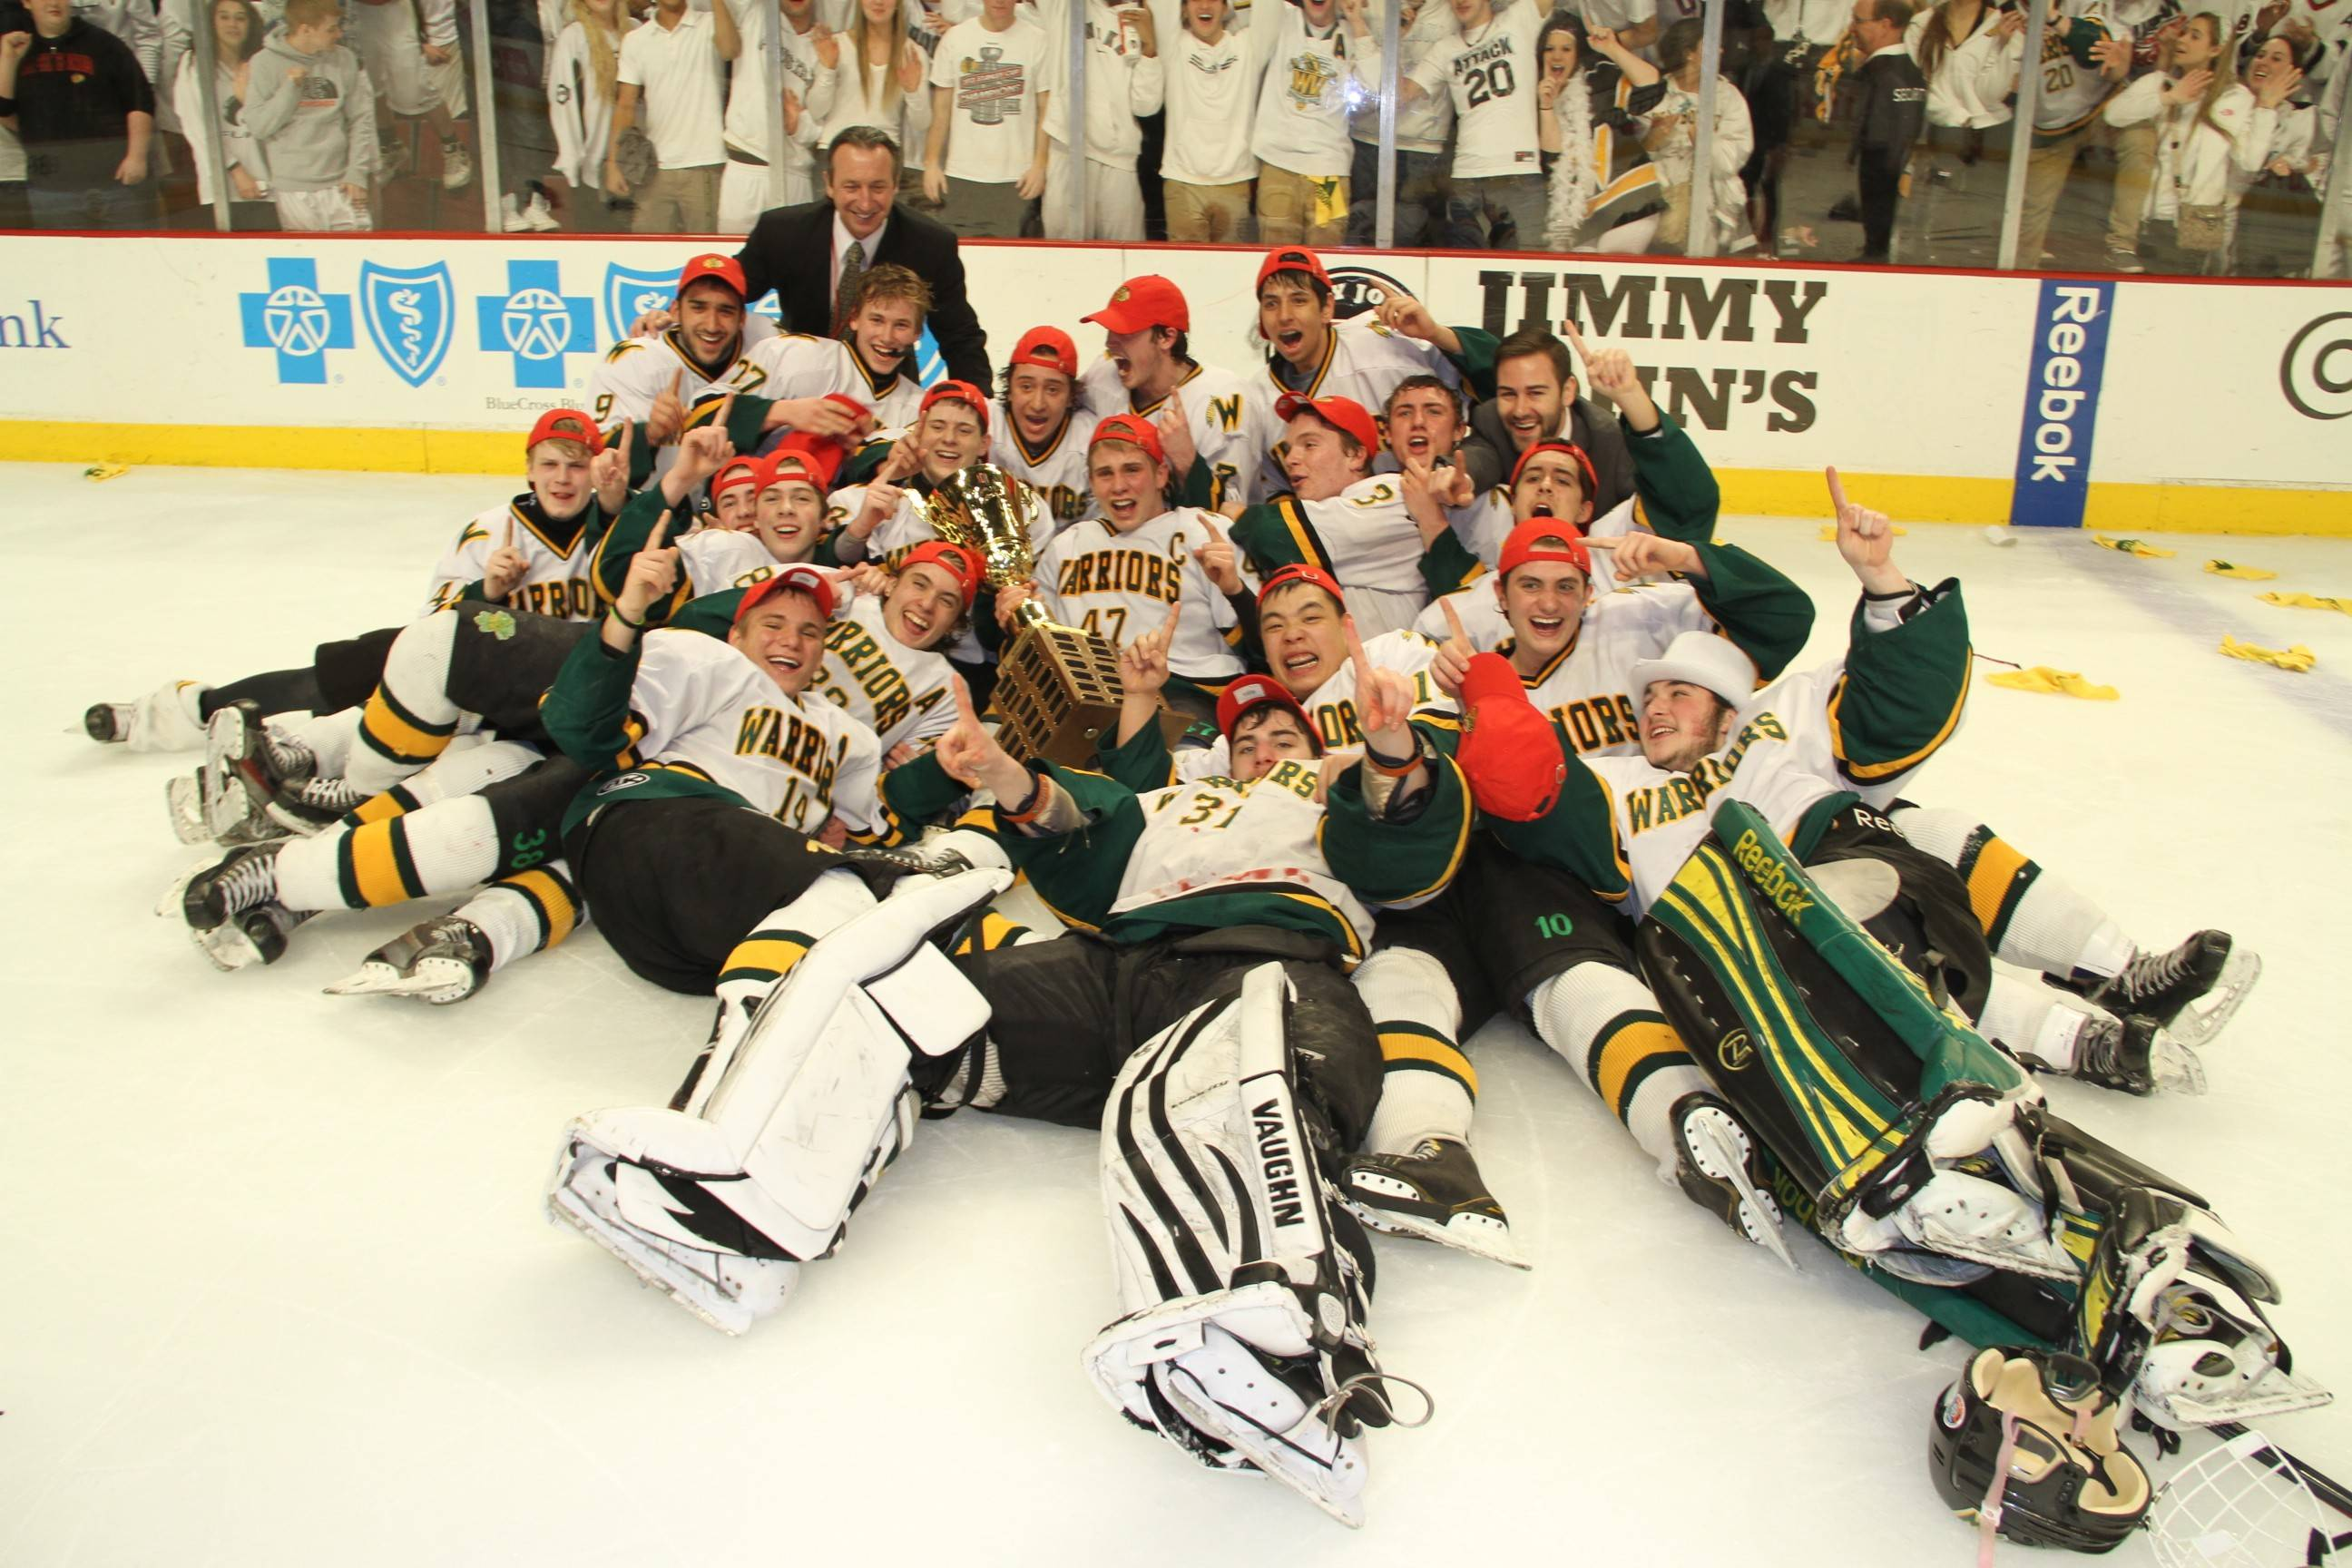 Waubonsie Valley revels in the moment after a 3-0 victory over Glenbard in the Combined Division state championship game on Thursday at the United Center.